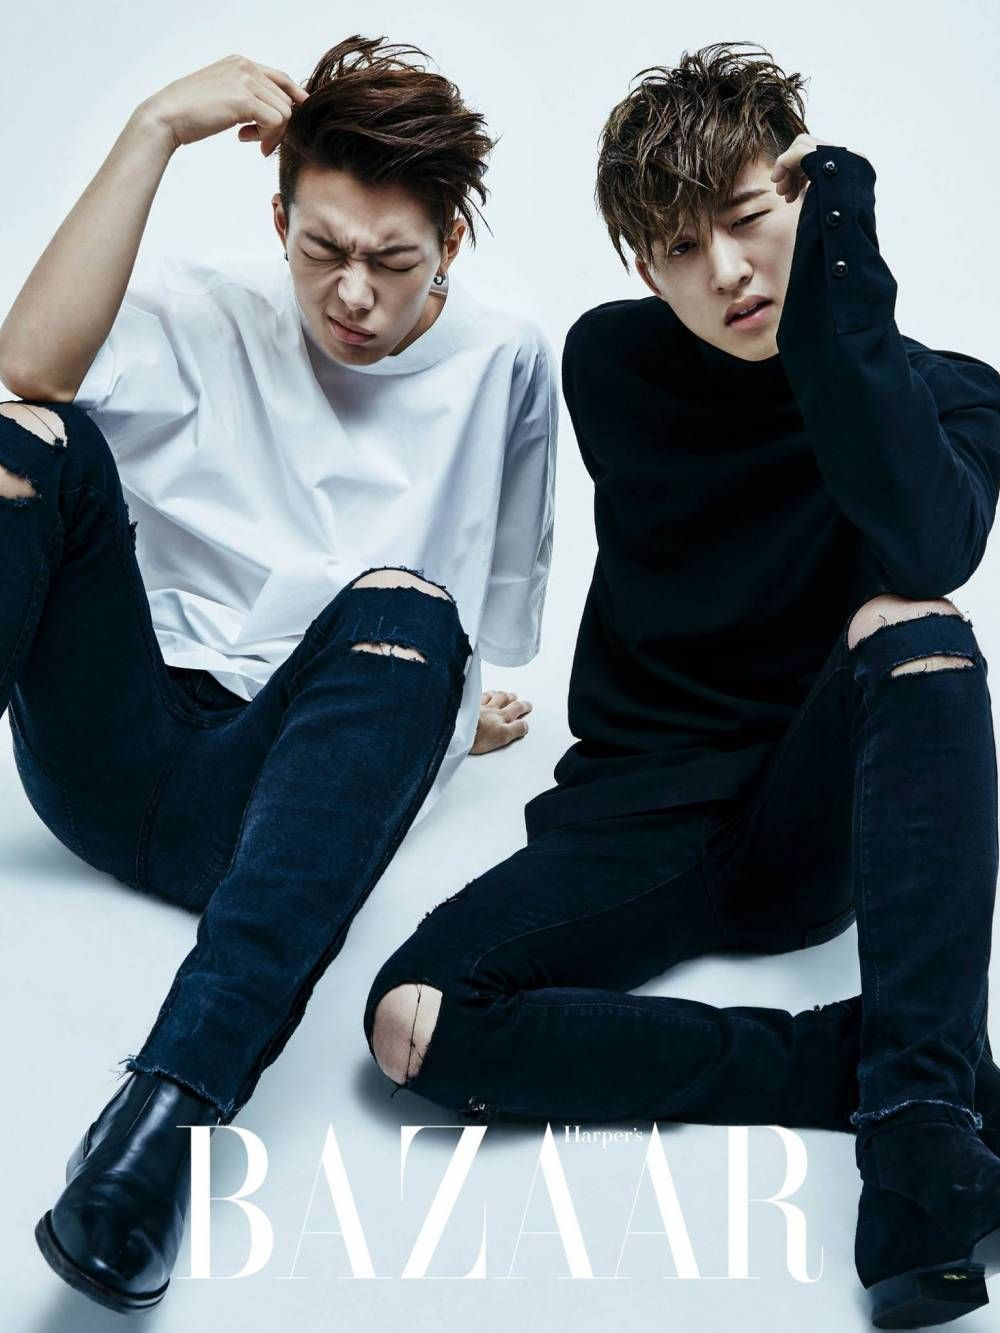 The iKON boys are all swag and sexy in their group